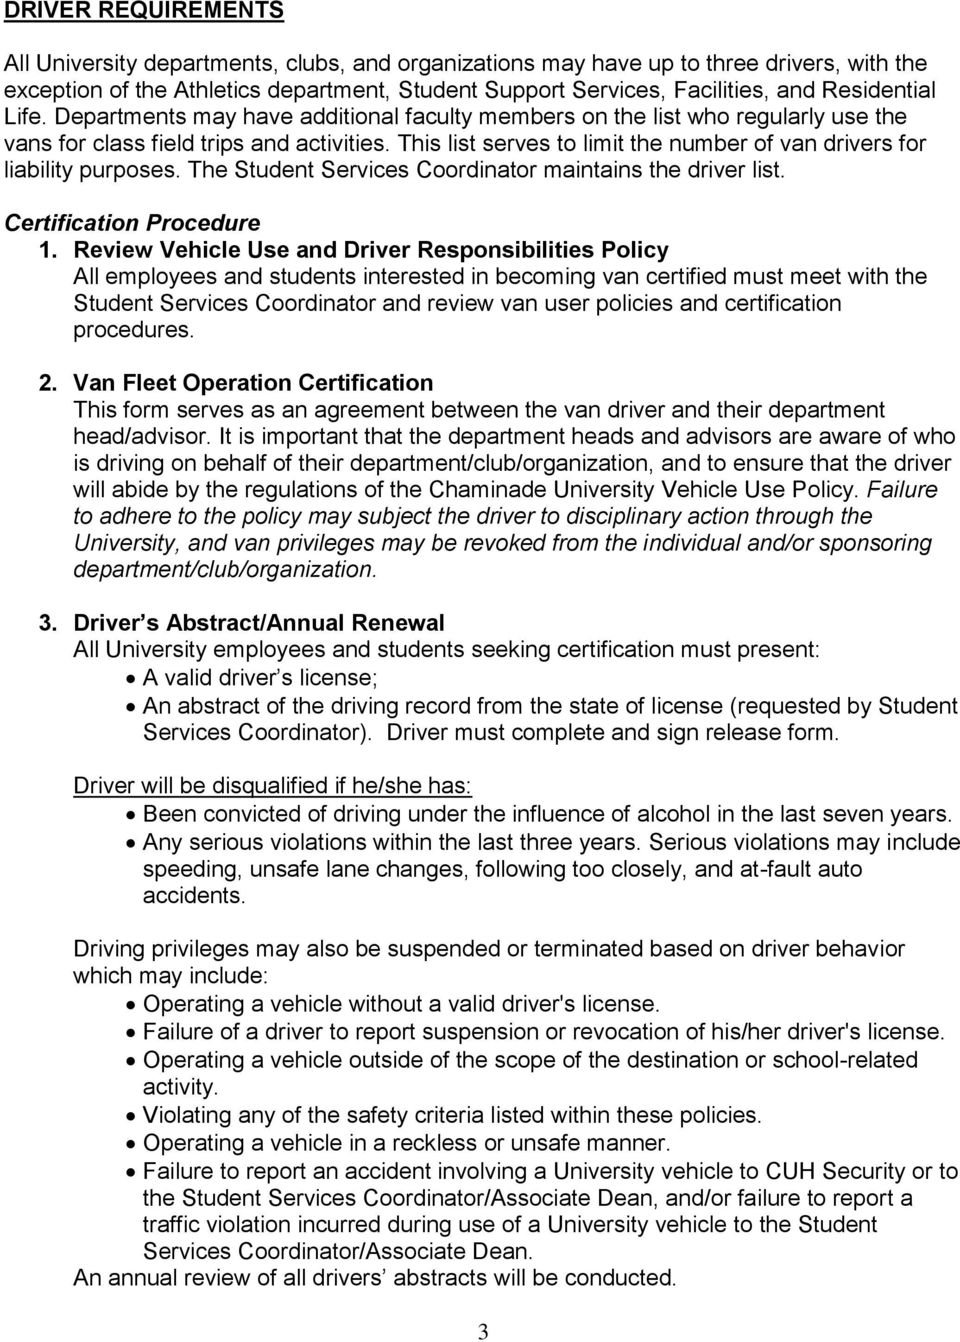 This list serves to limit the number of van drivers for liability purposes. The Student Services Coordinator maintains the driver list. Certification Procedure 1.